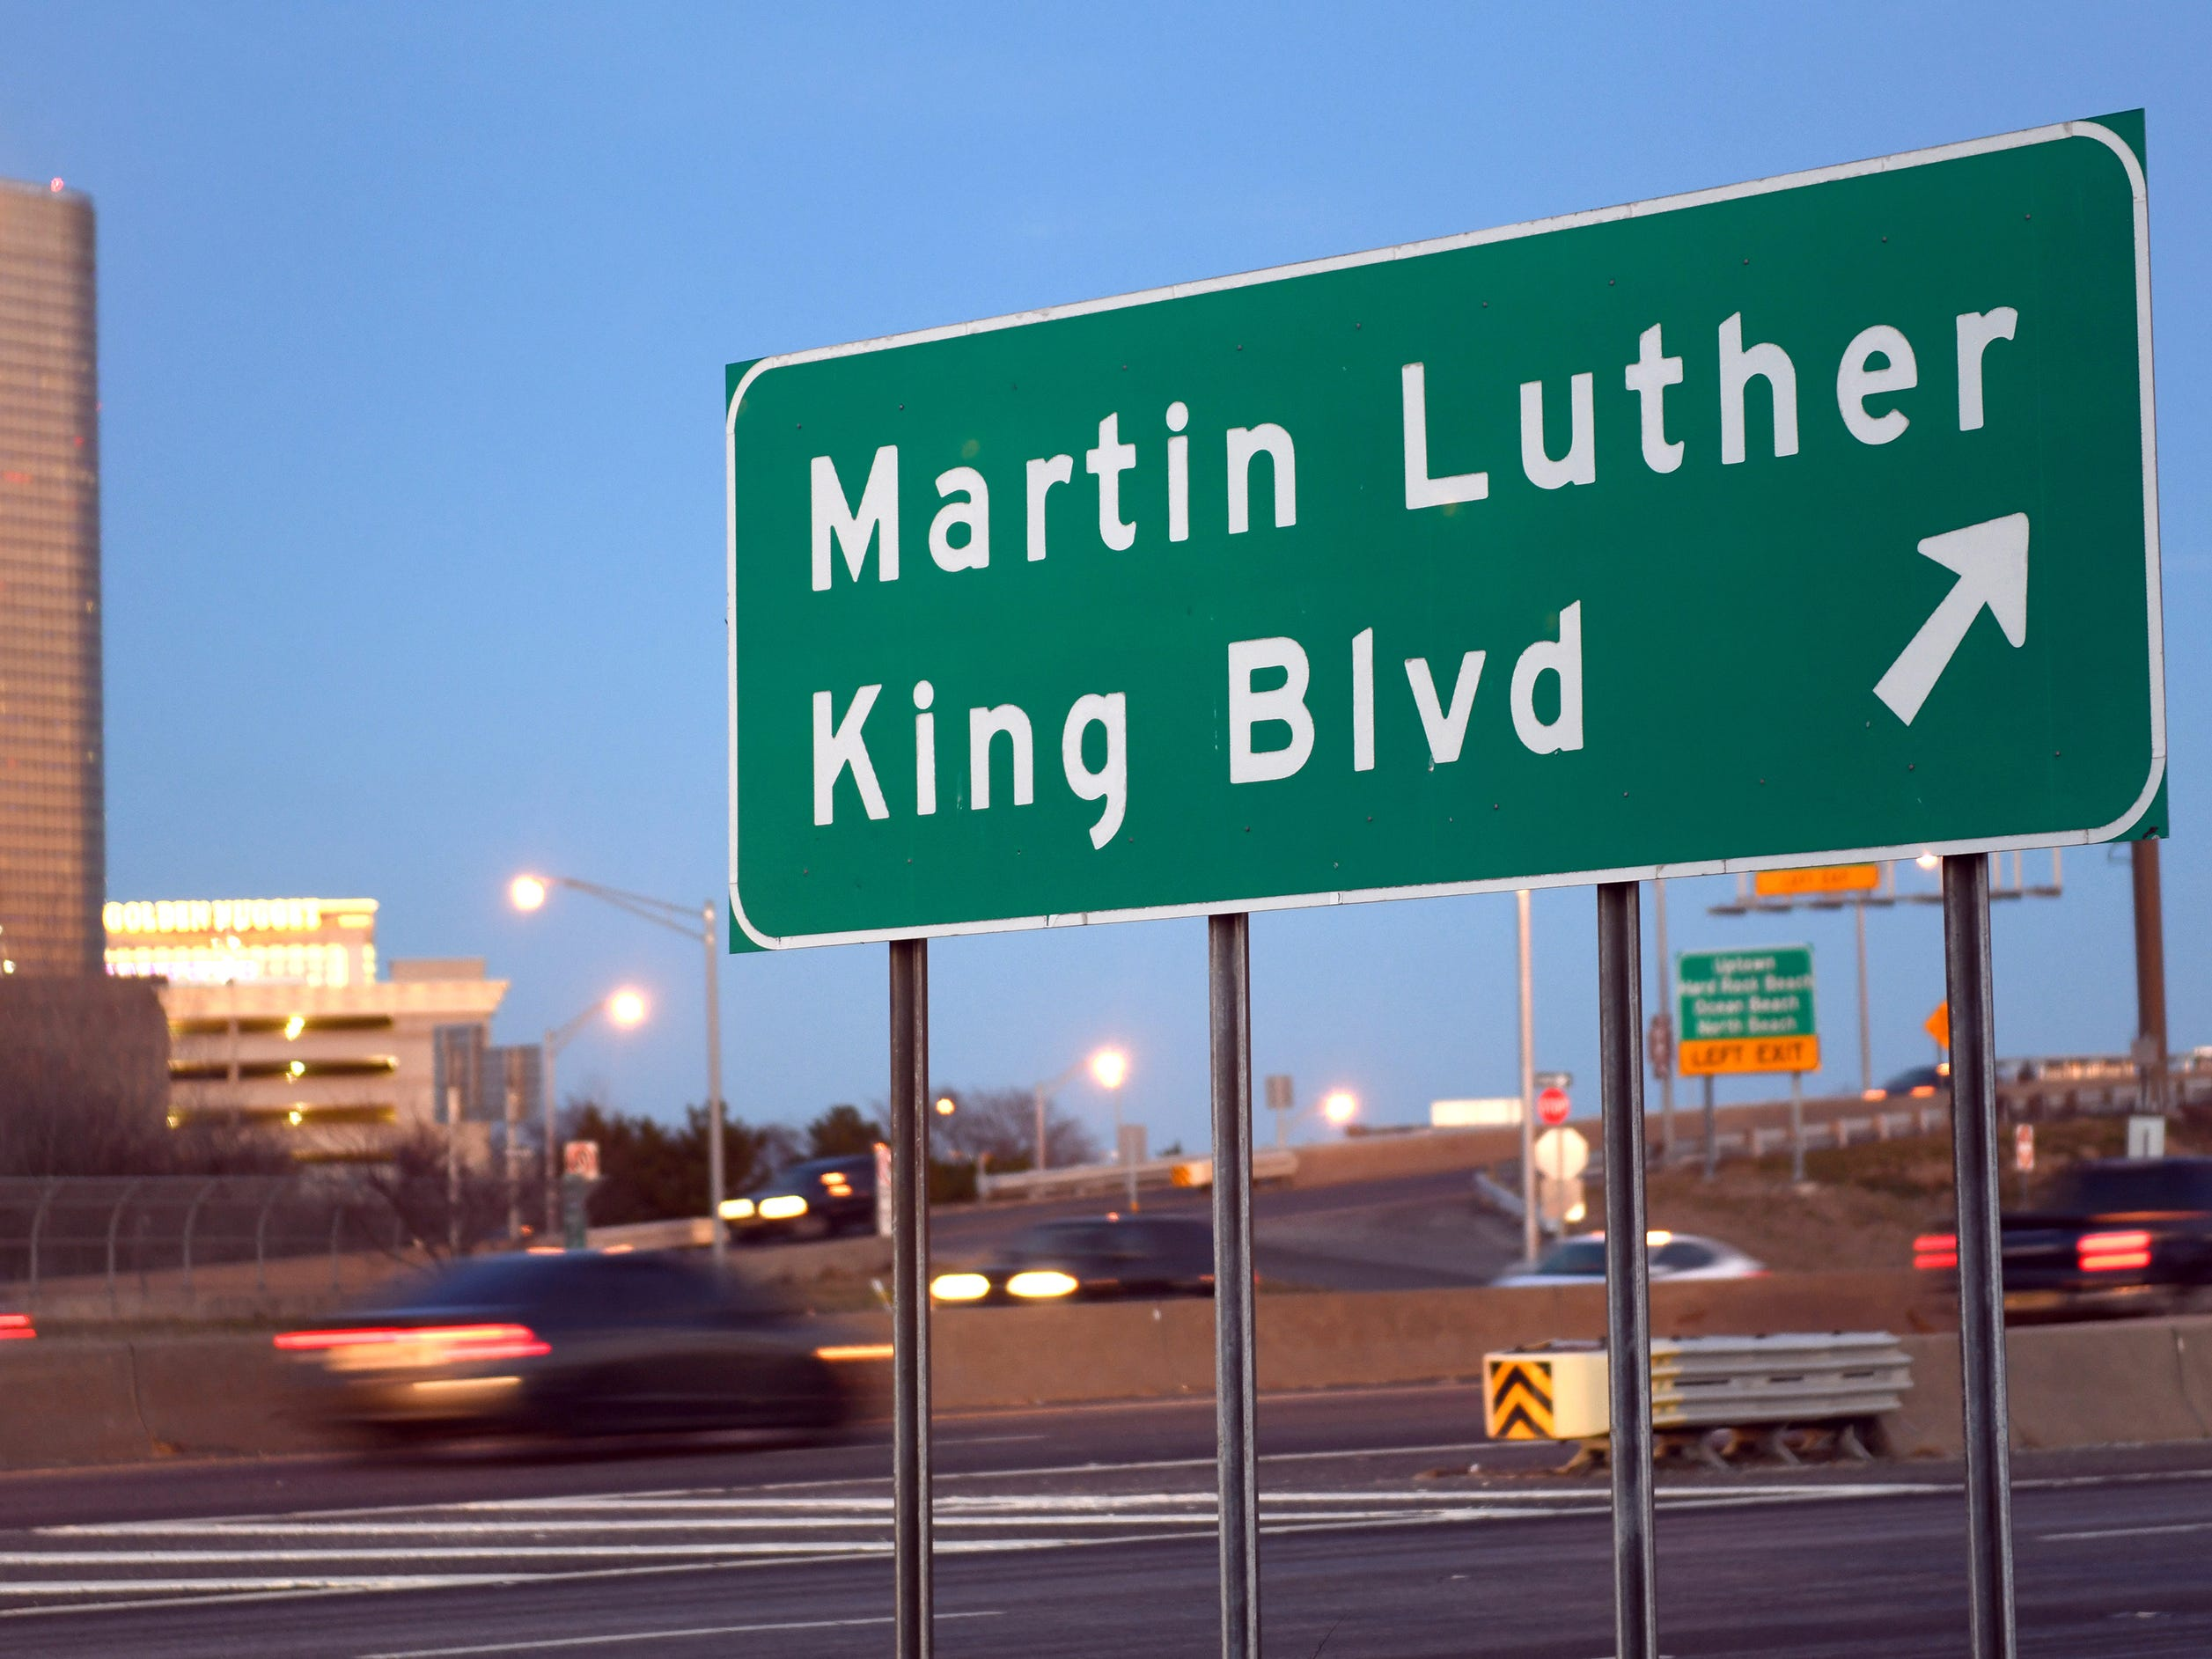 A Route 30 sign points drivers to Dr. Martin Luther King Jr. Boulevard in Atlantic City. The Borgata Hotel and Casino can be seen in the background on Friday, Jan. 11, 2019.